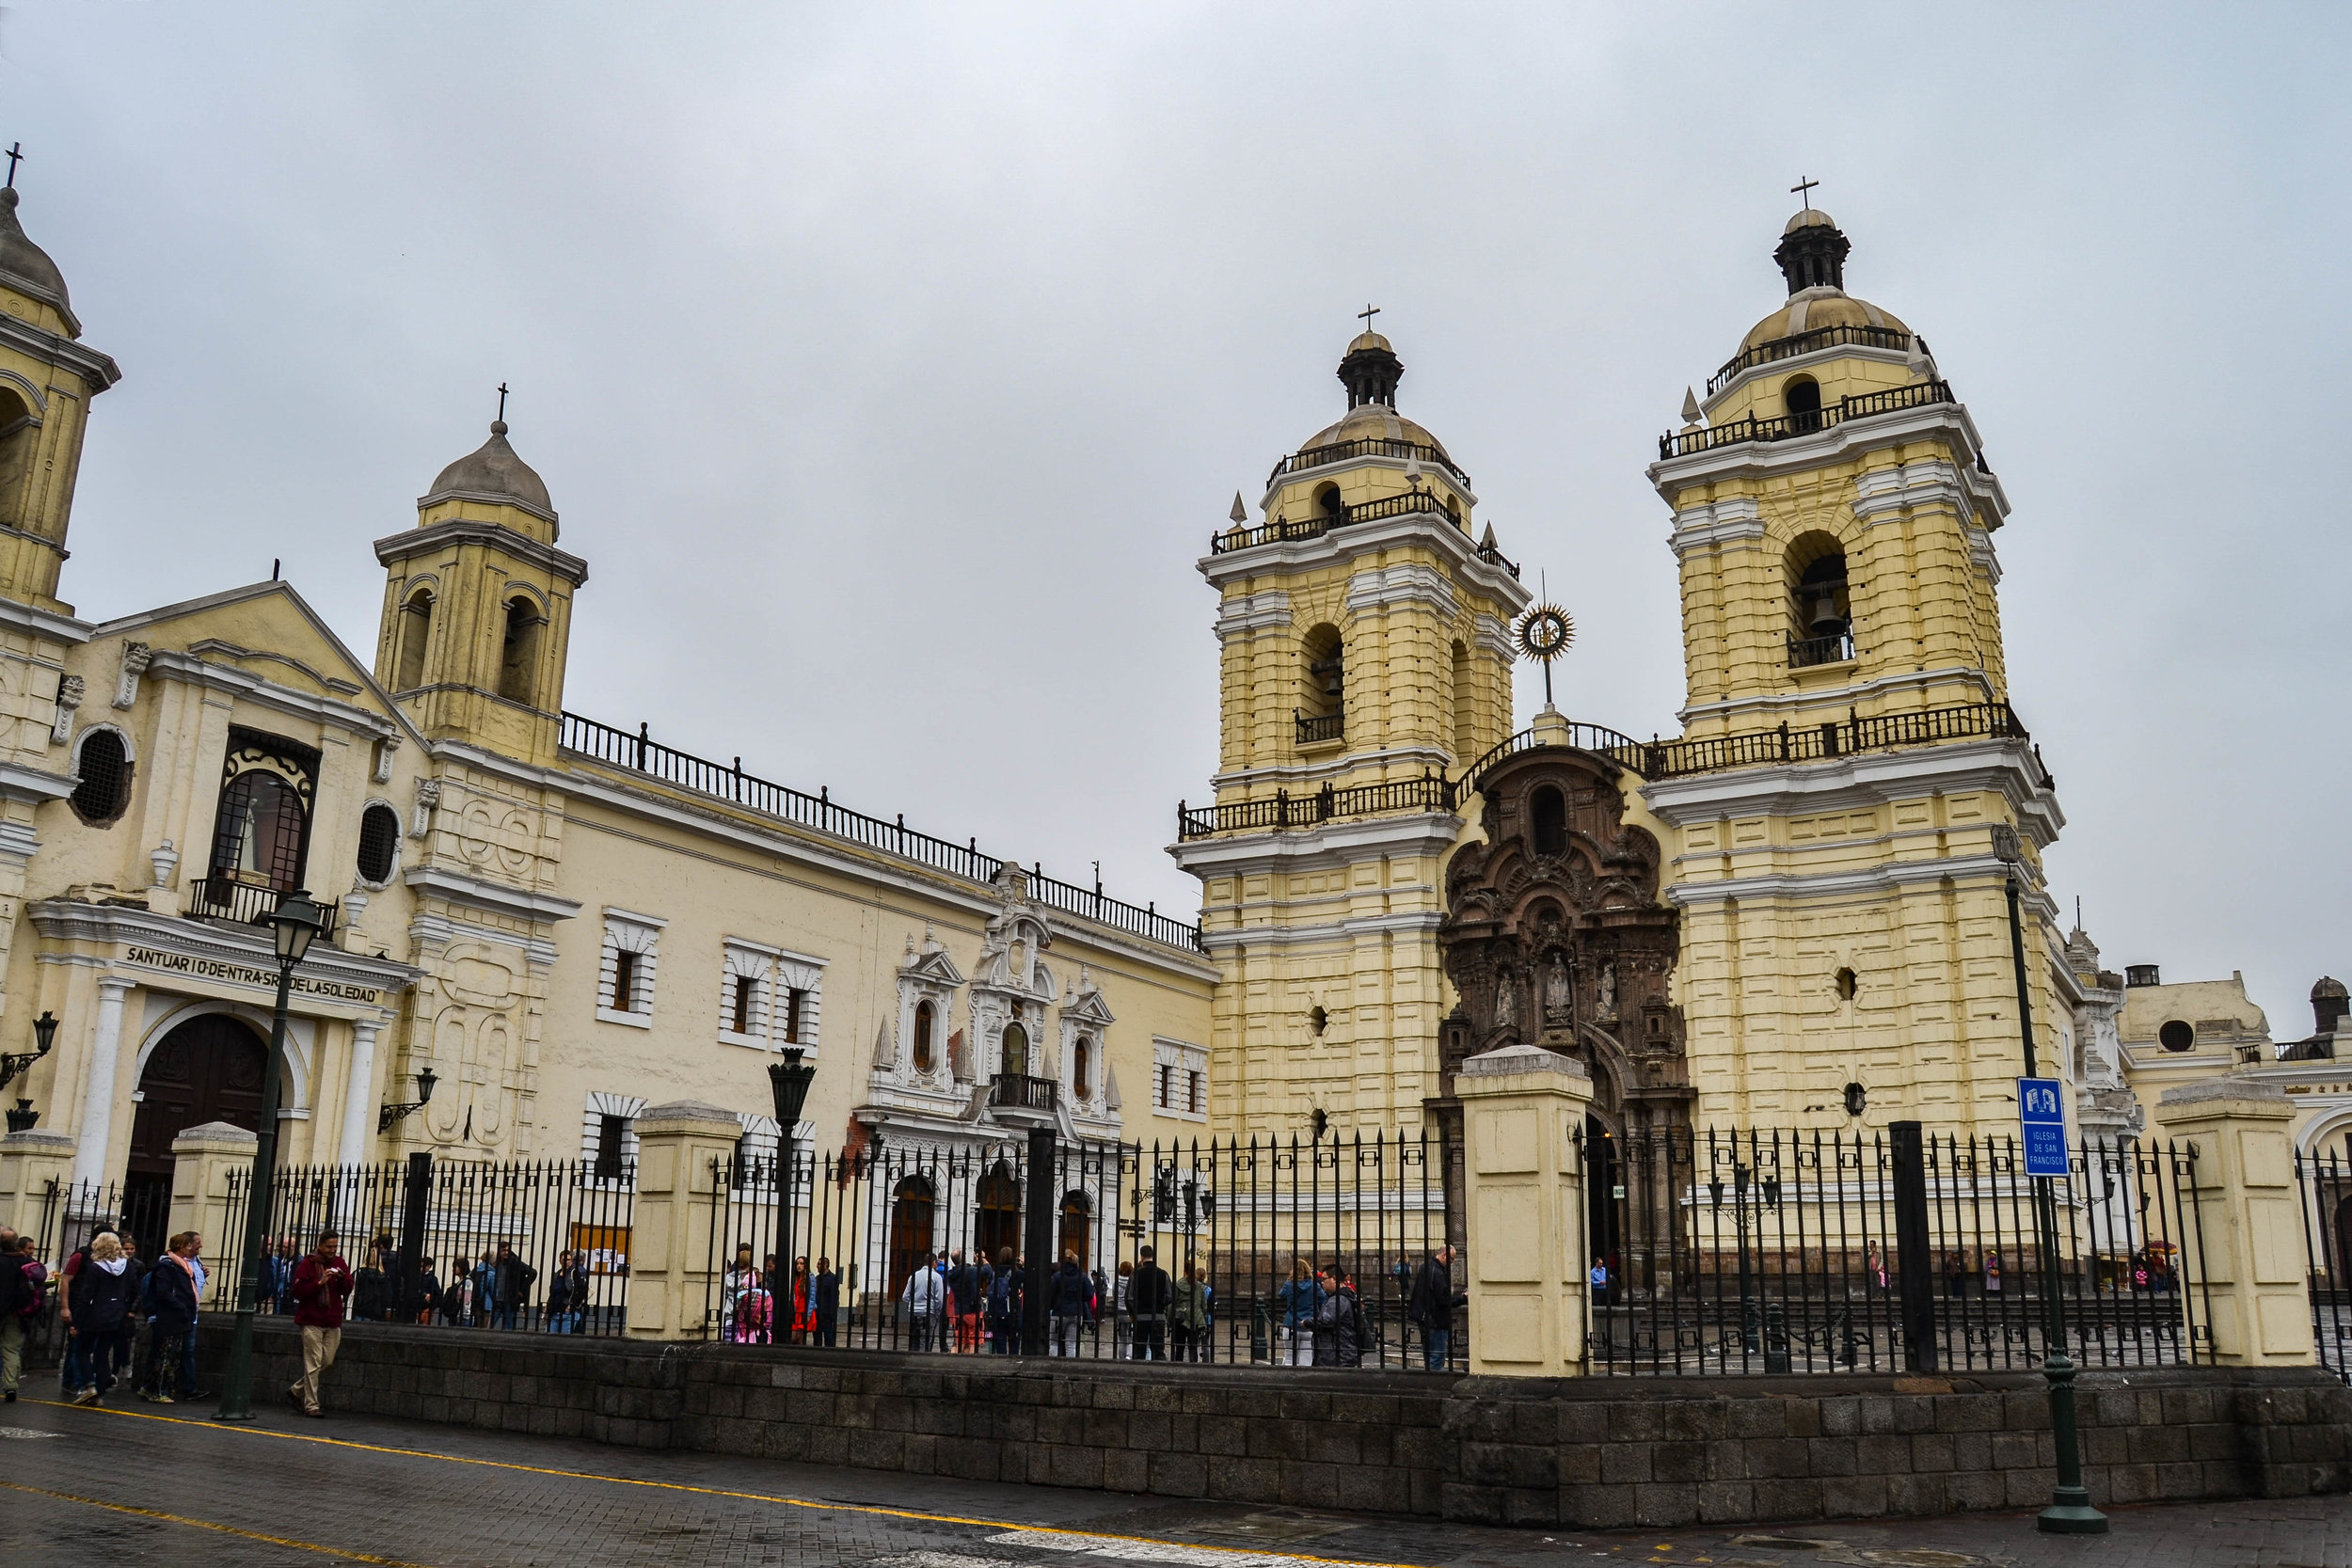 Church of San Francisco and Catacombs